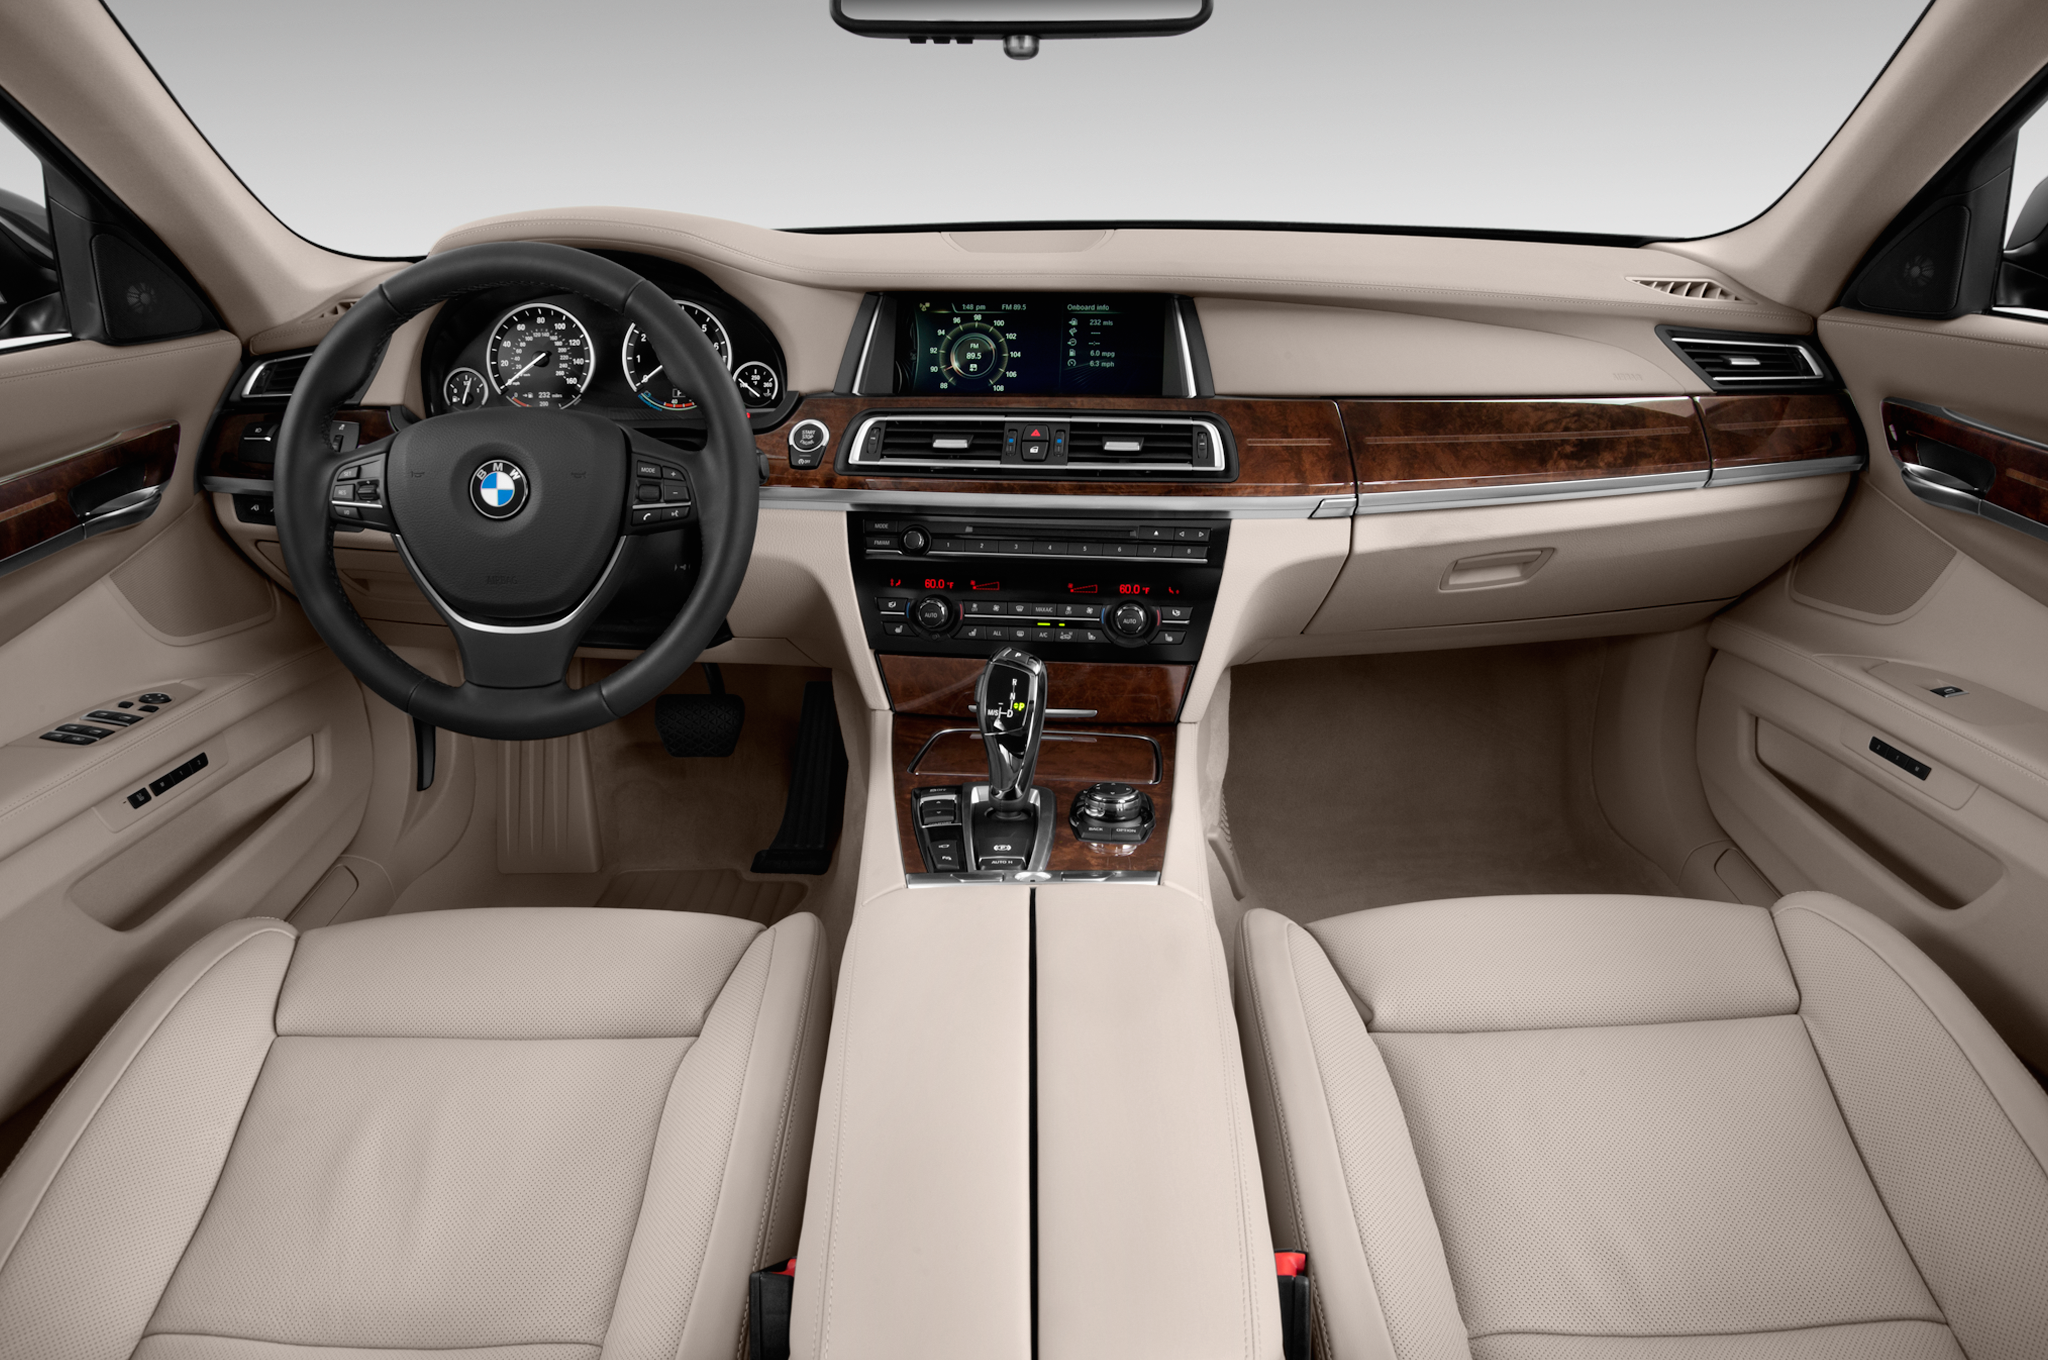 2015 Bmw Activehybrid 7 #2